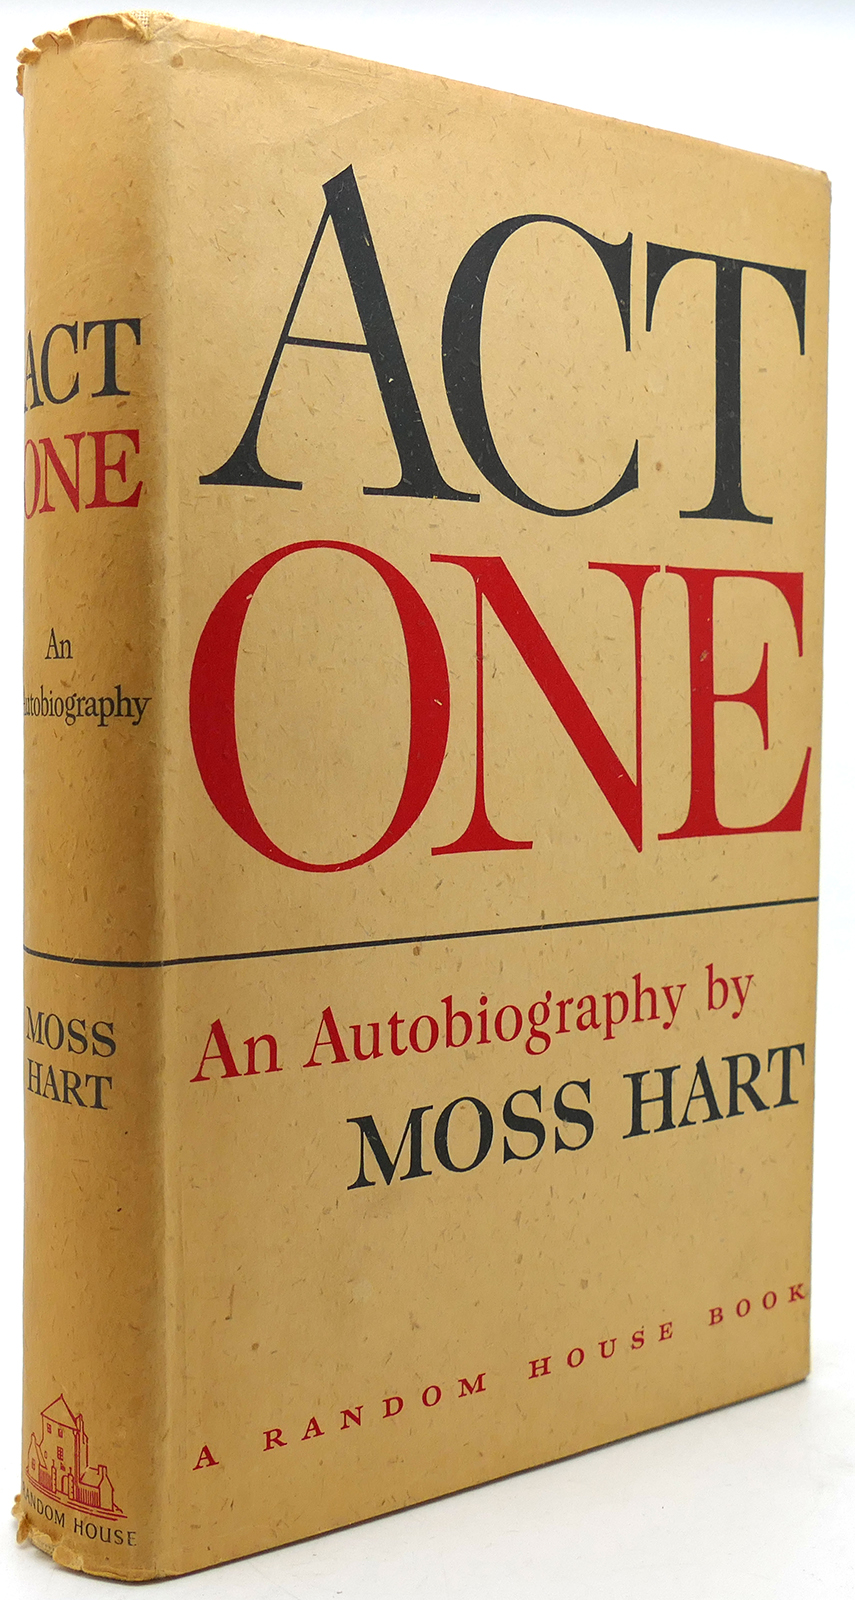 MOSS HART - Act One